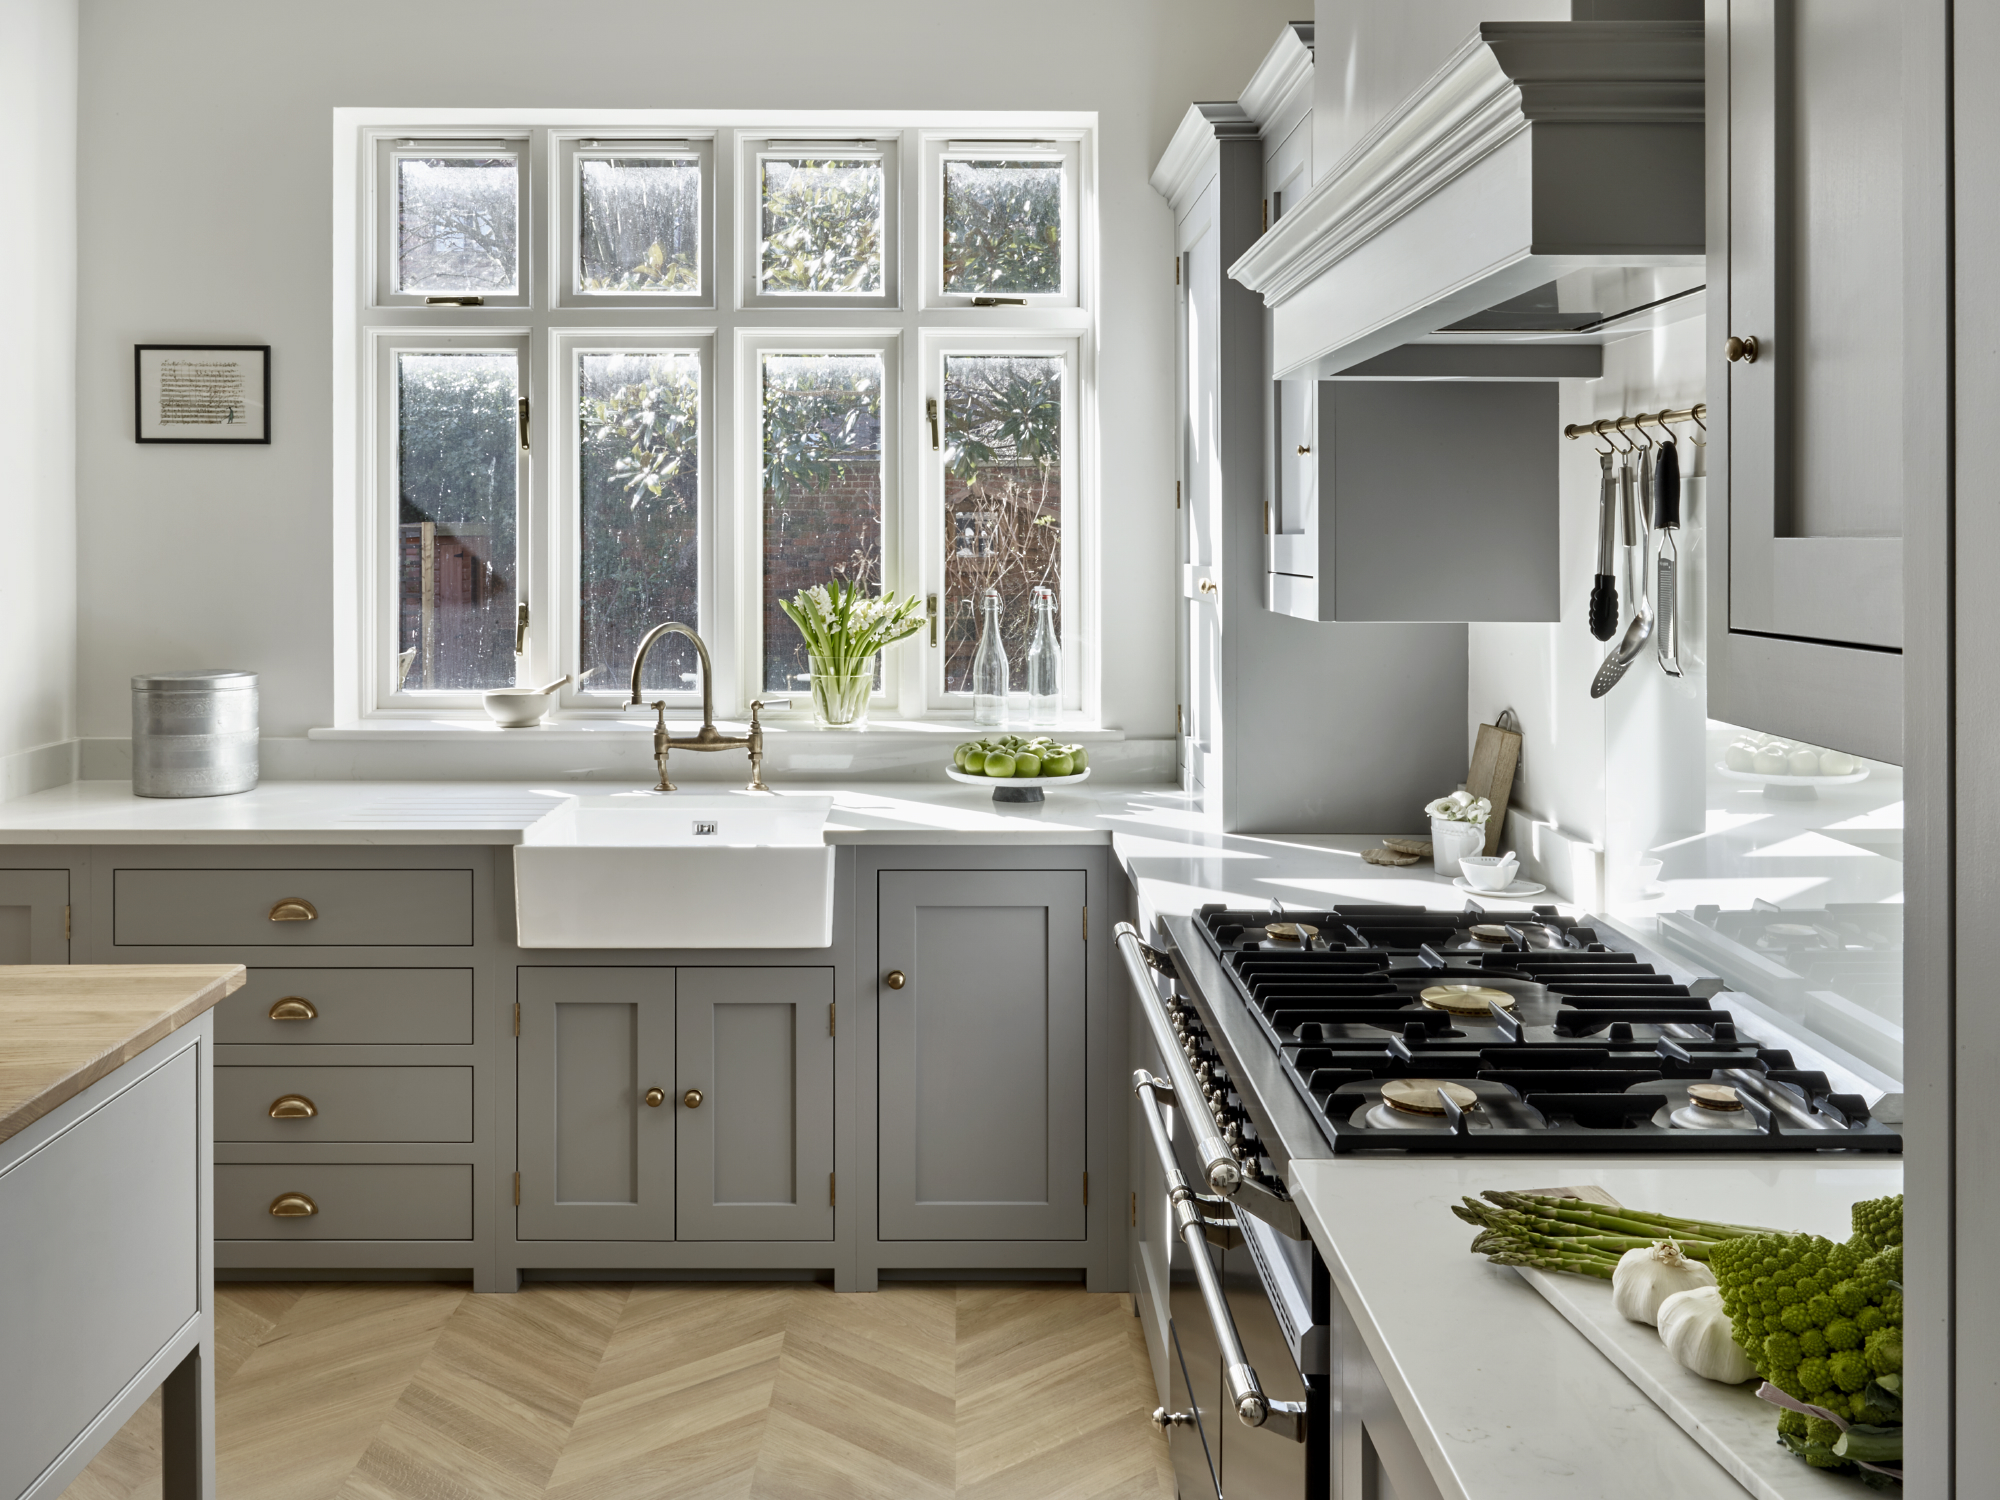 Grey country kitchen by Brayer Design with shaker cabinets, butlers sink and chevron wood floor